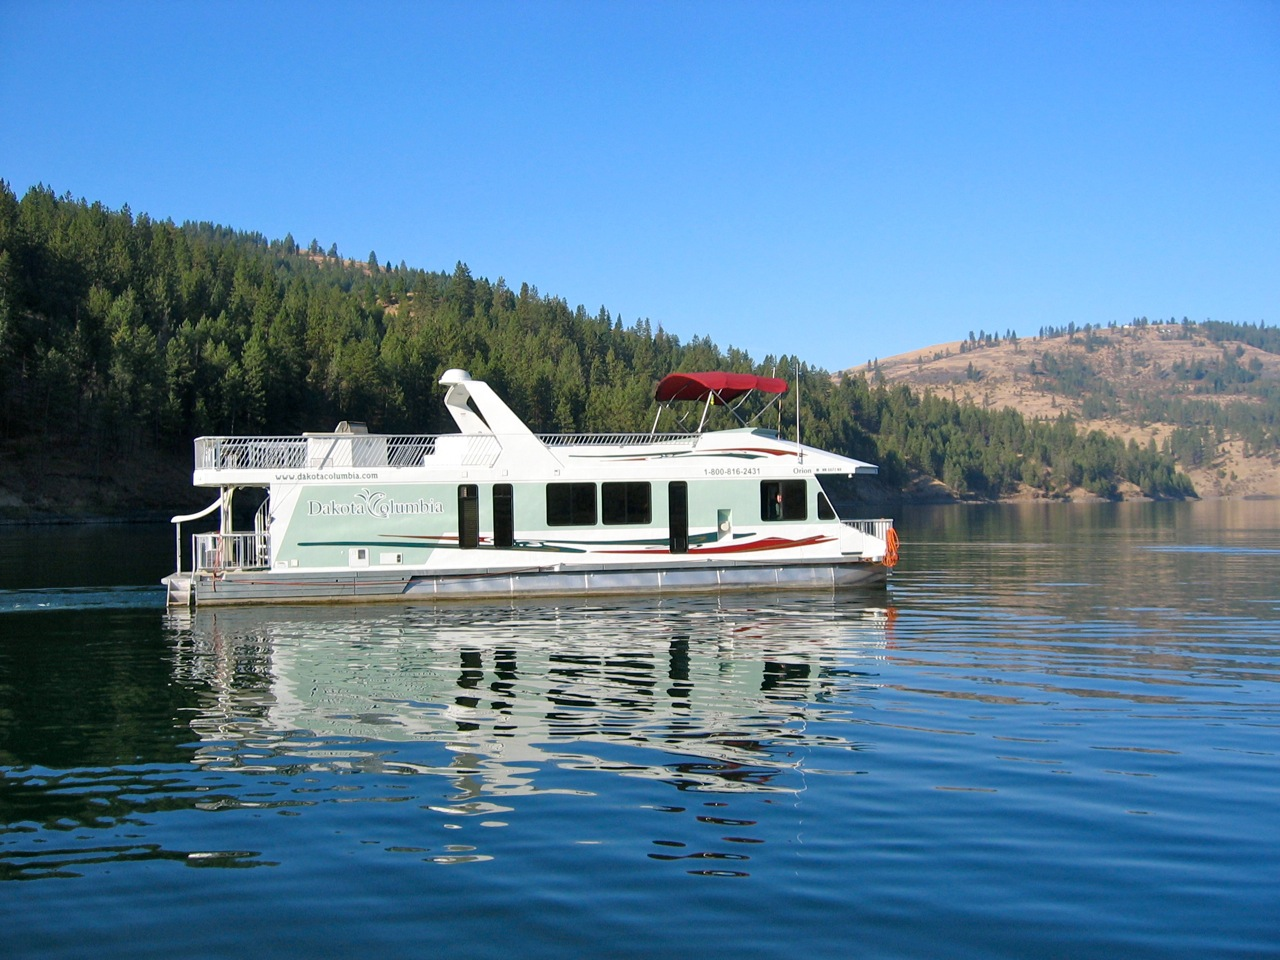 Dakota Columbia Houseboat